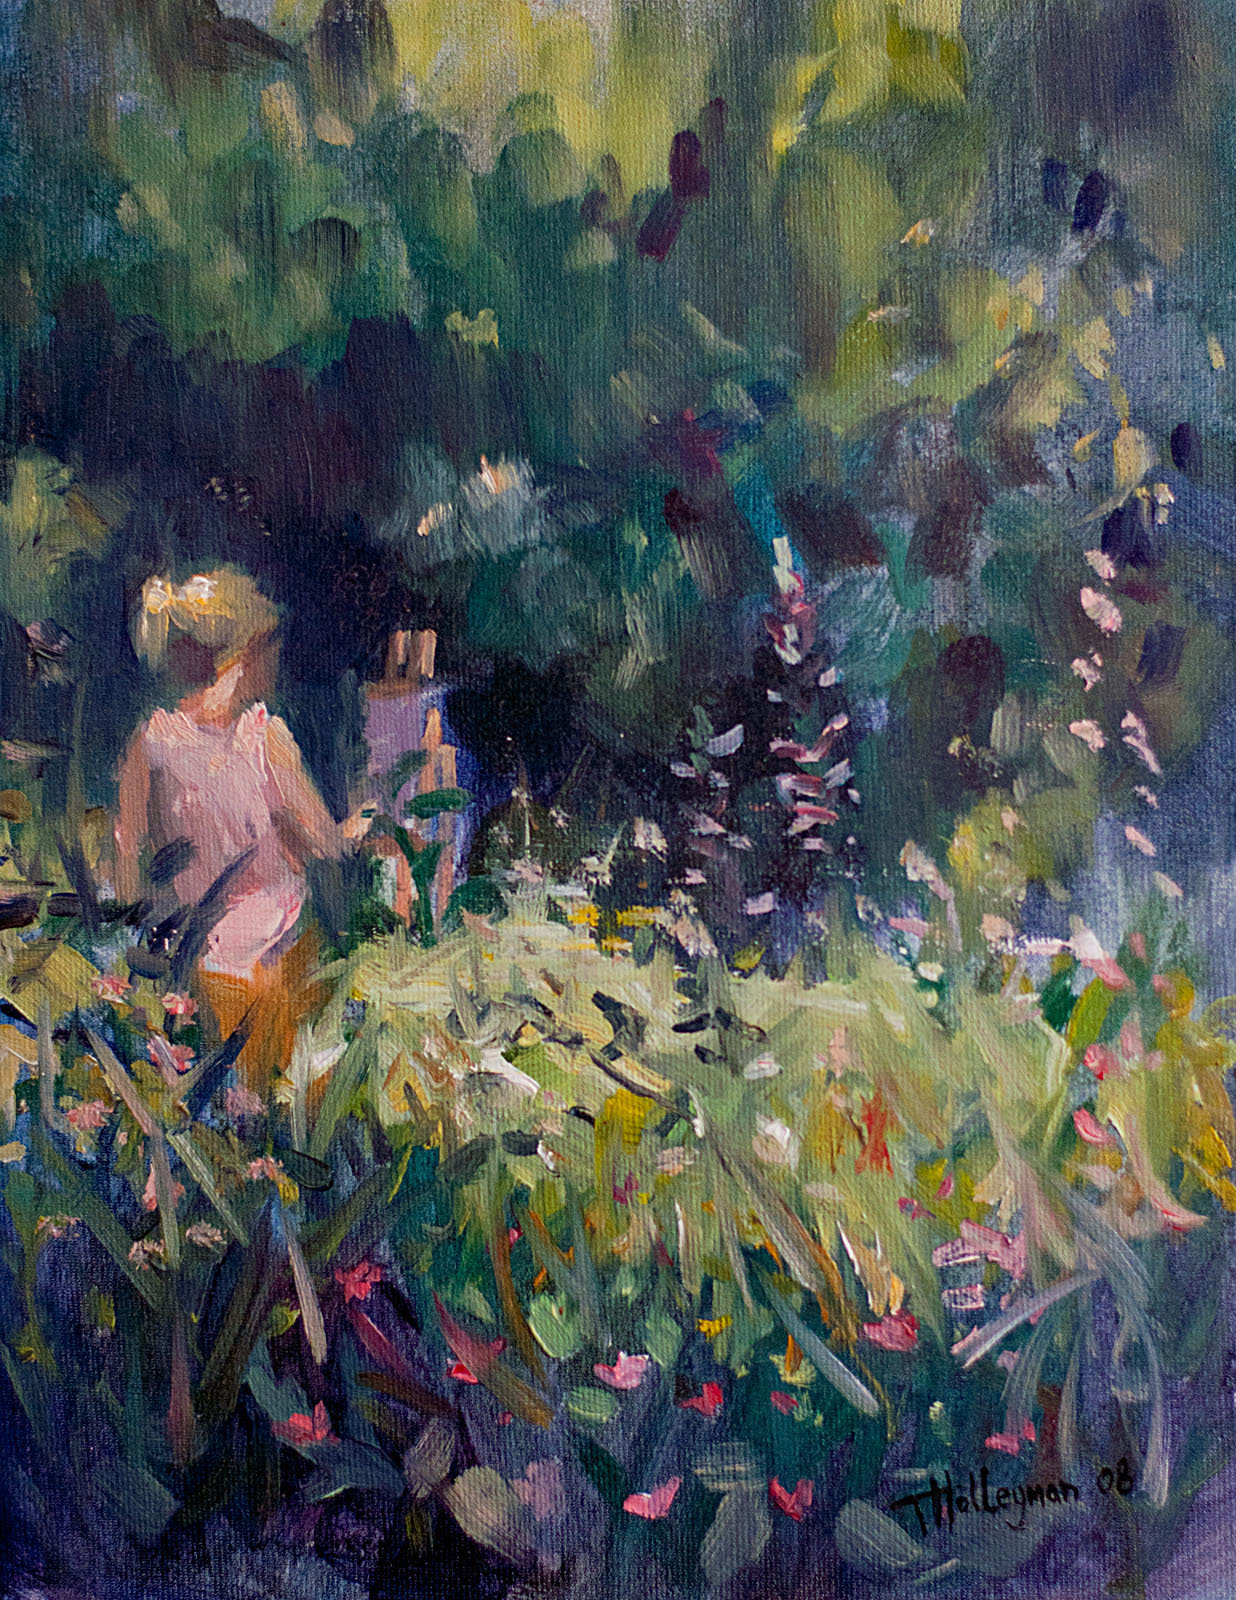 Tim holleyman painting in the garden